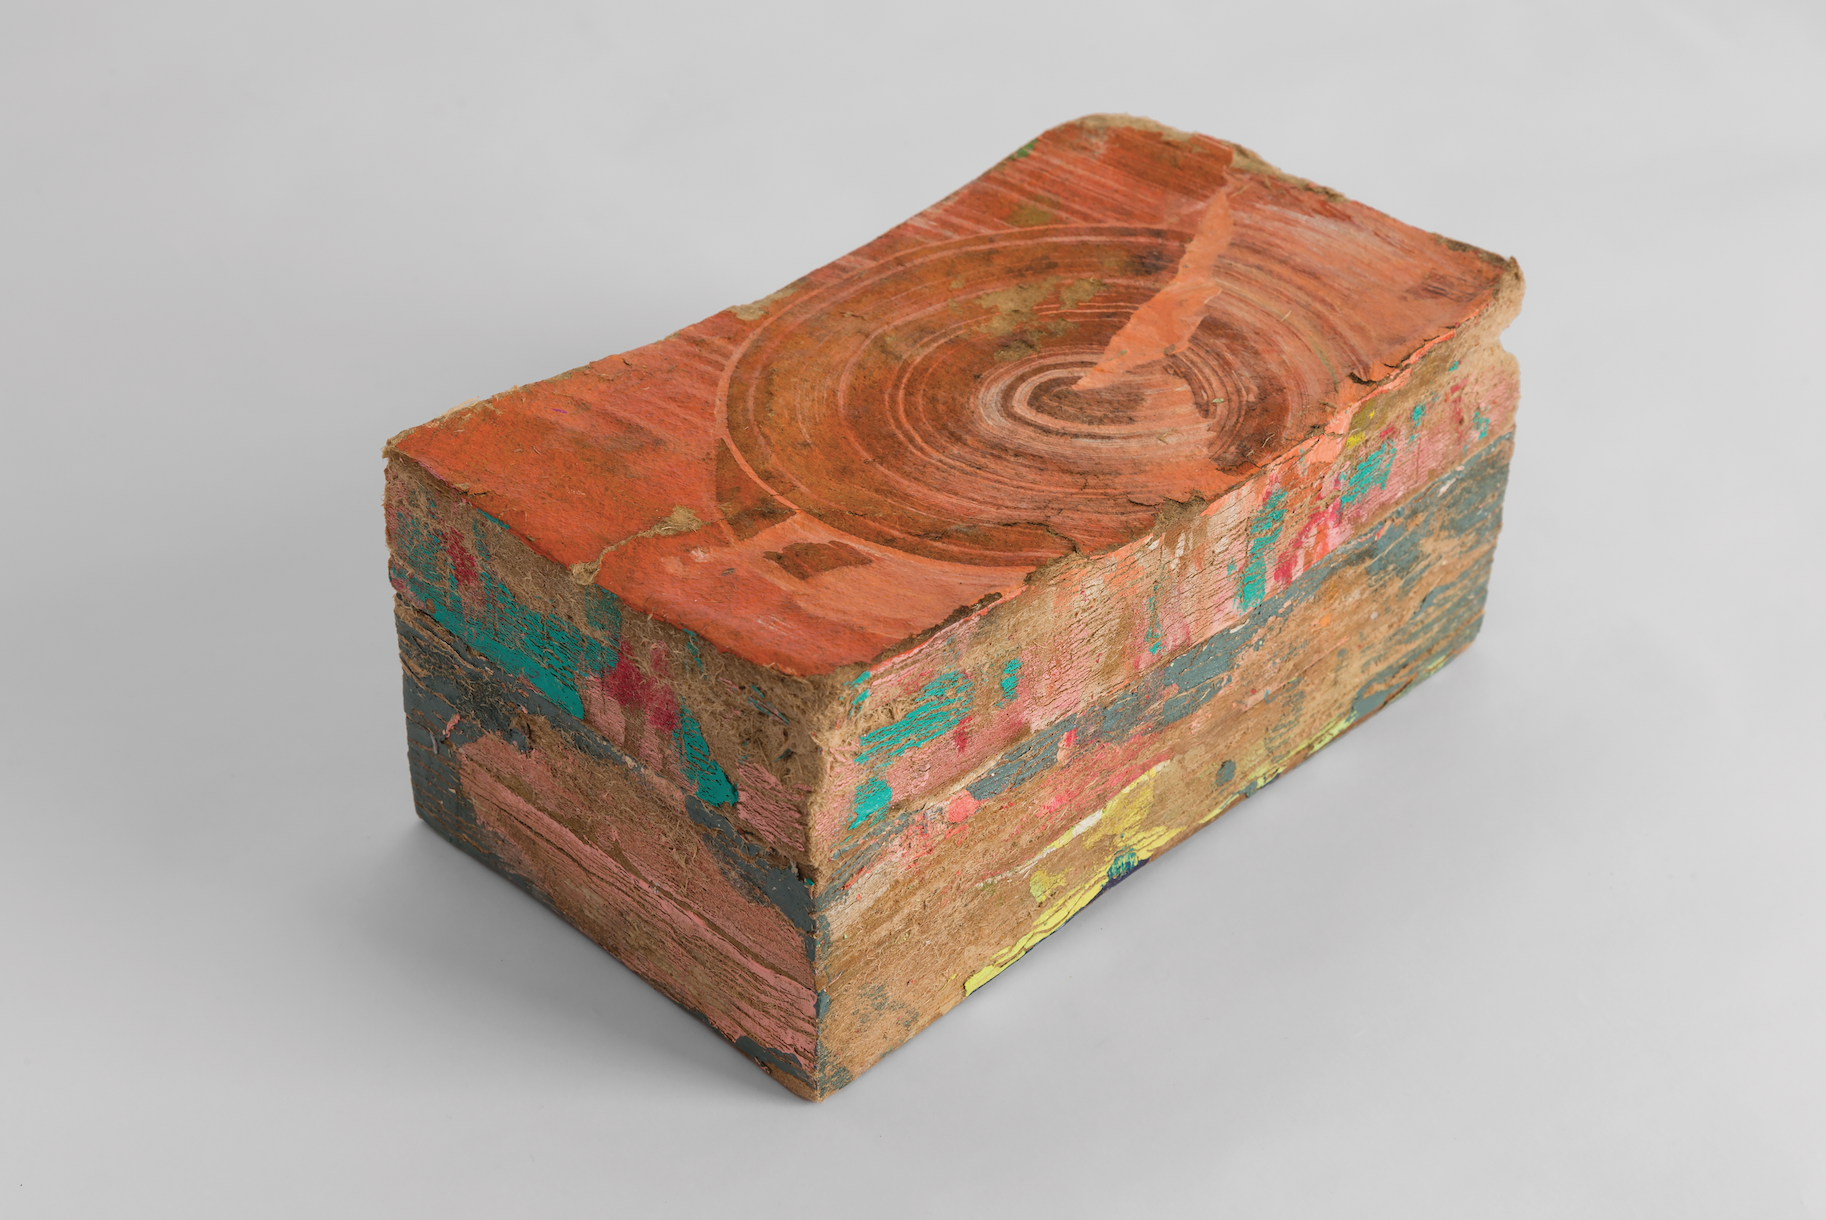 What appears to be a rectangular block of wood spattered with multiple colors of paint